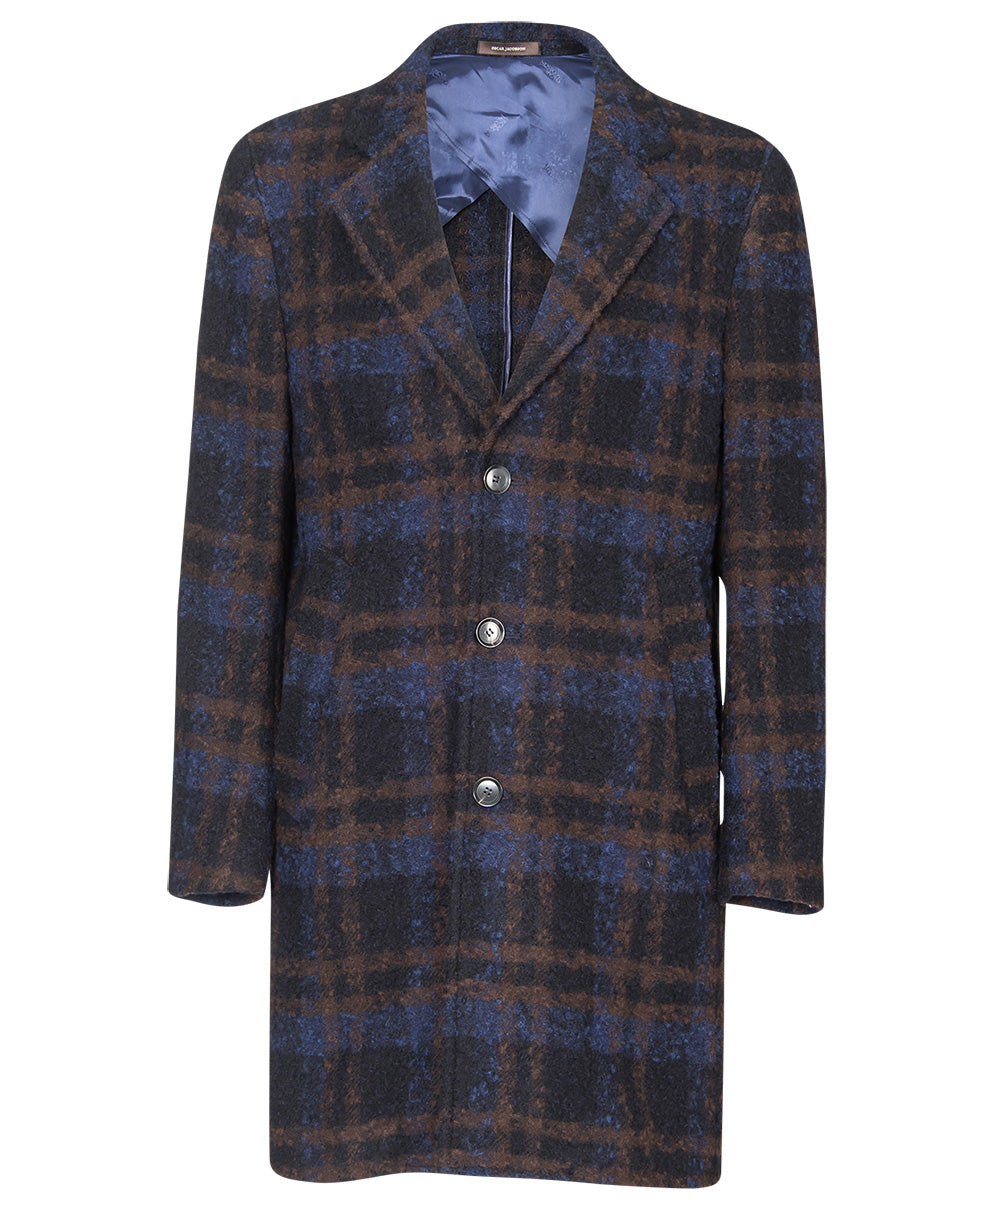 Scala Brown/Blue Sophisticated Plaid Top Coat